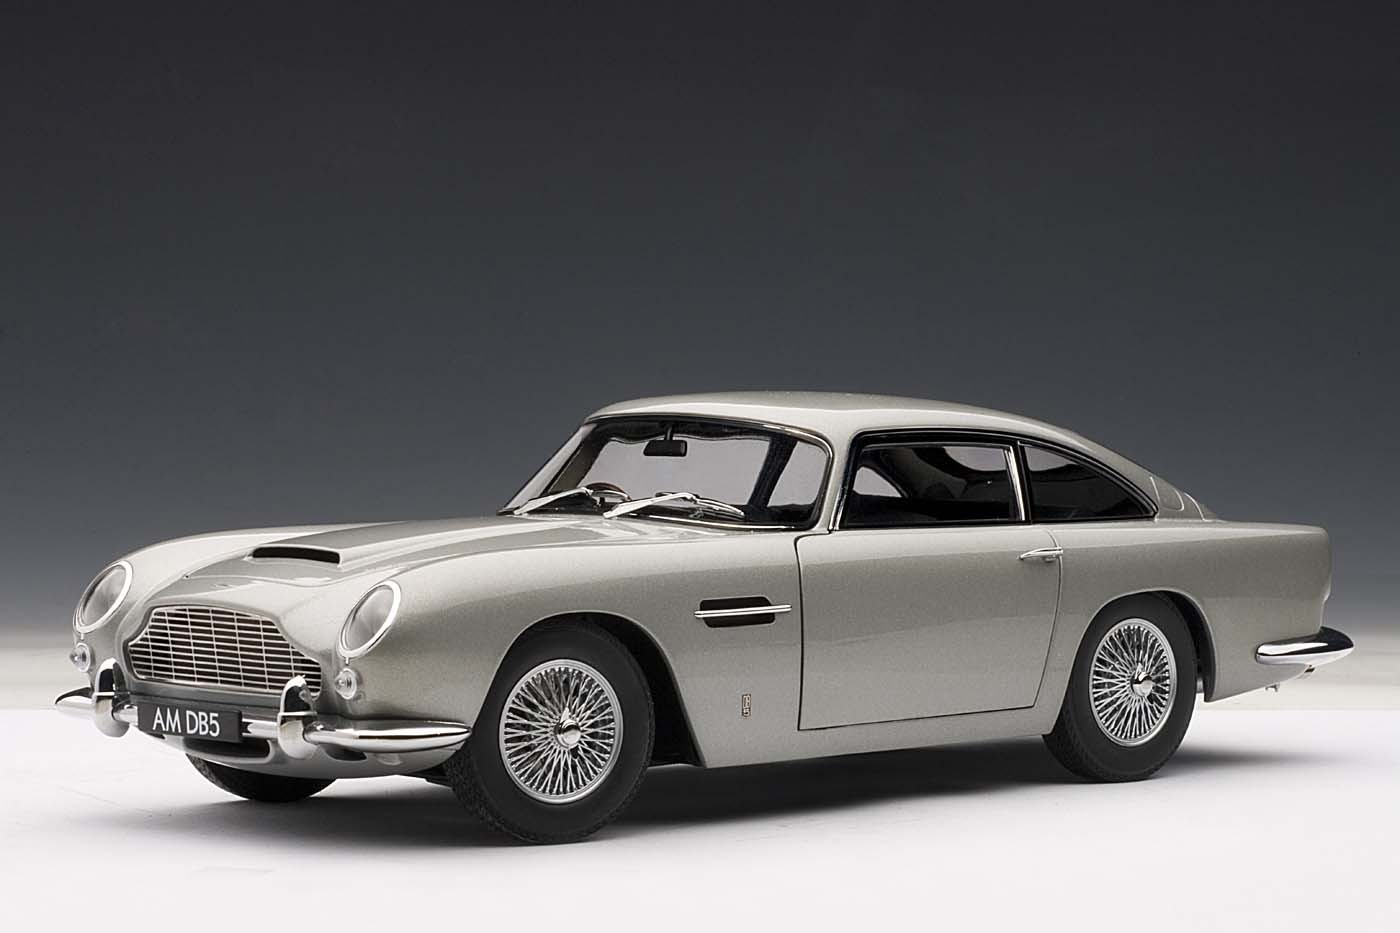 AUTOart Highly Detailed Die-cast Model Silver Aston Martin